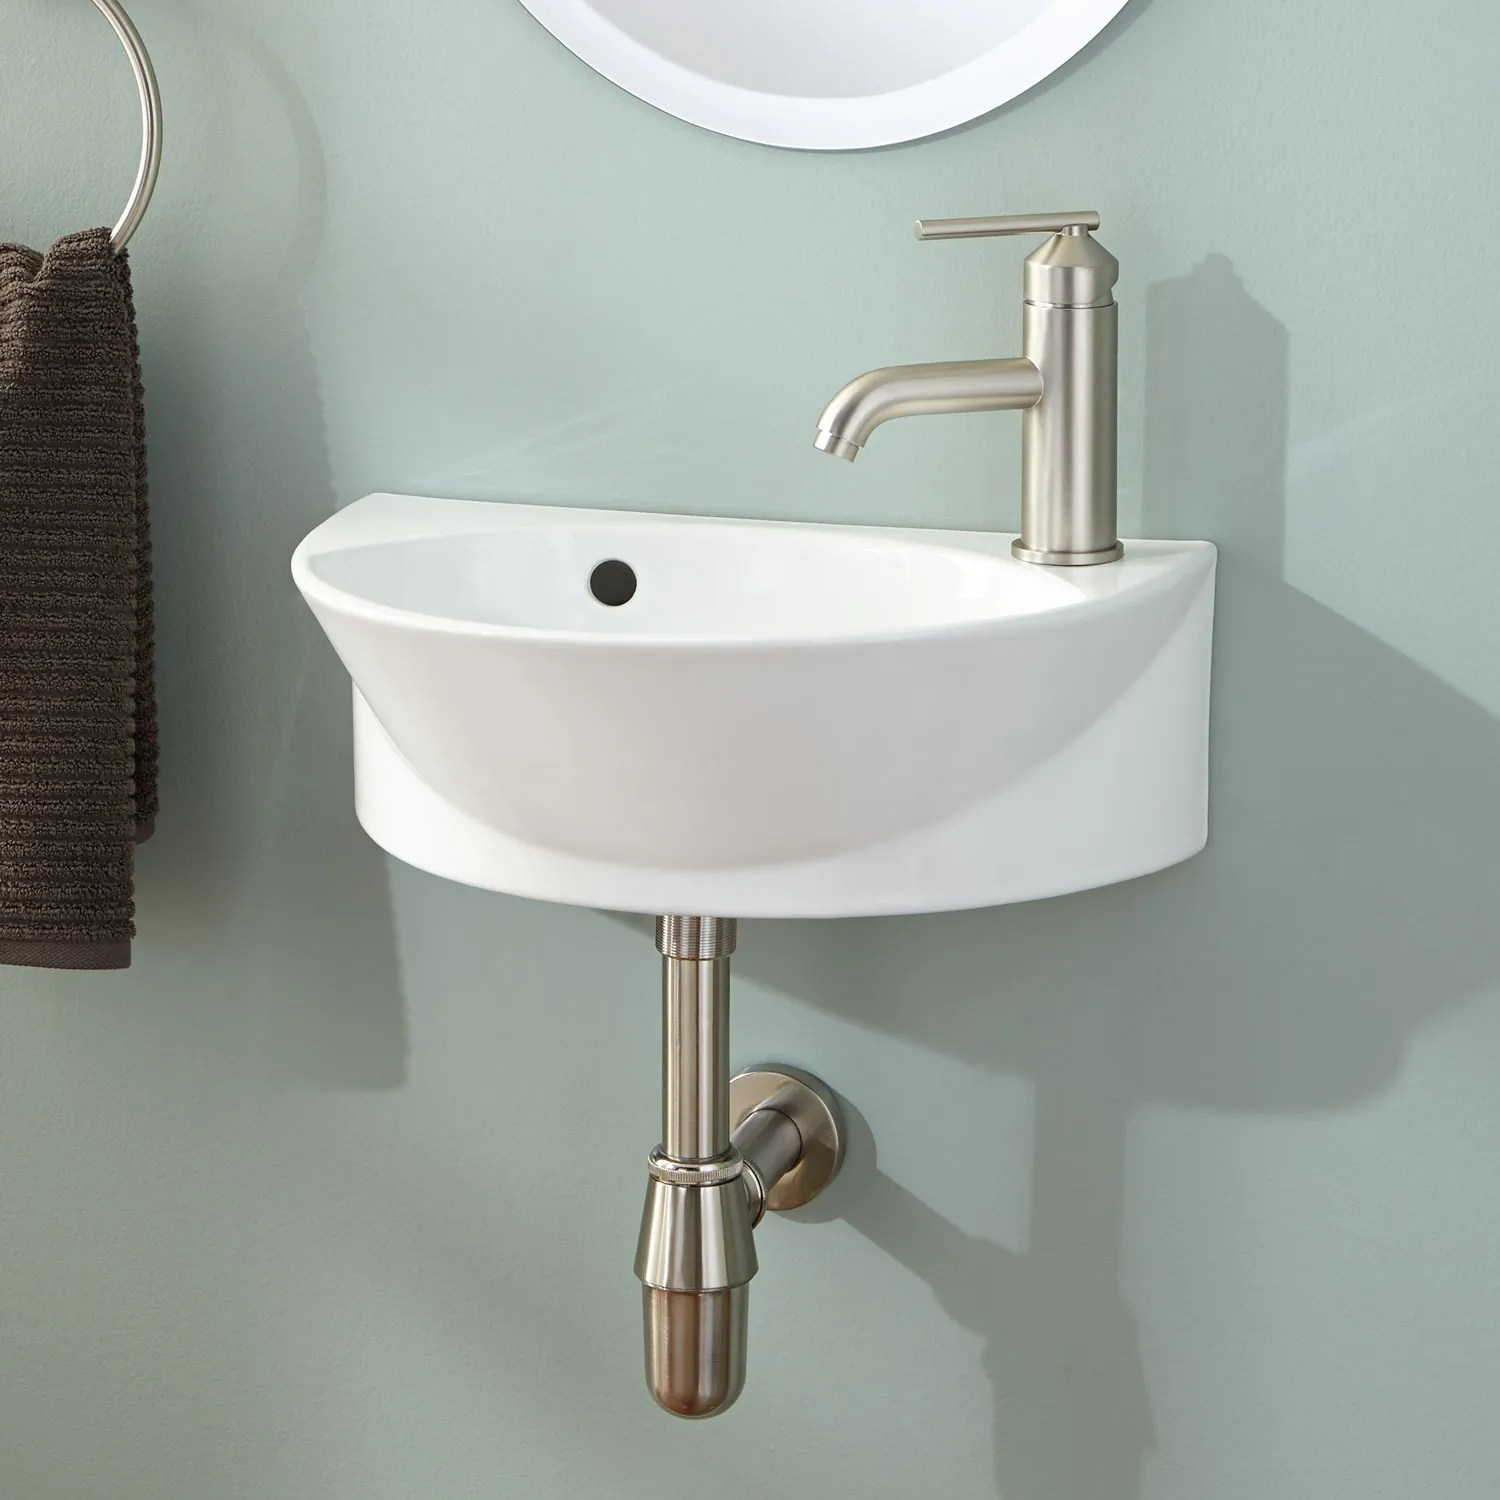 Garlin WallMount Bathroom Sink